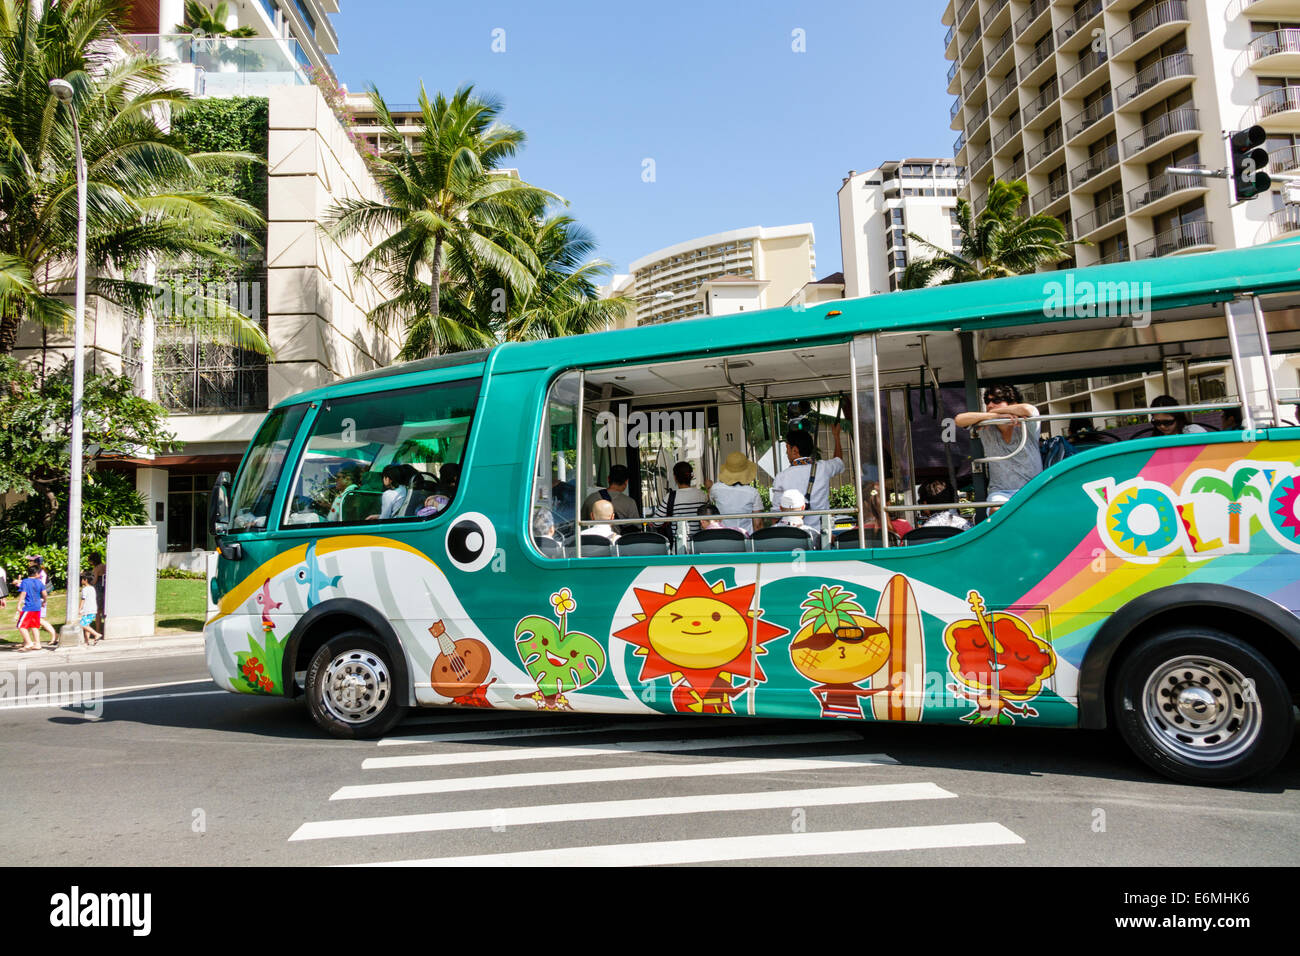 Waikiki Beach Honolulu Hawaii Hawaiian Oahu Kalia Road bus motor coach - Stock Image